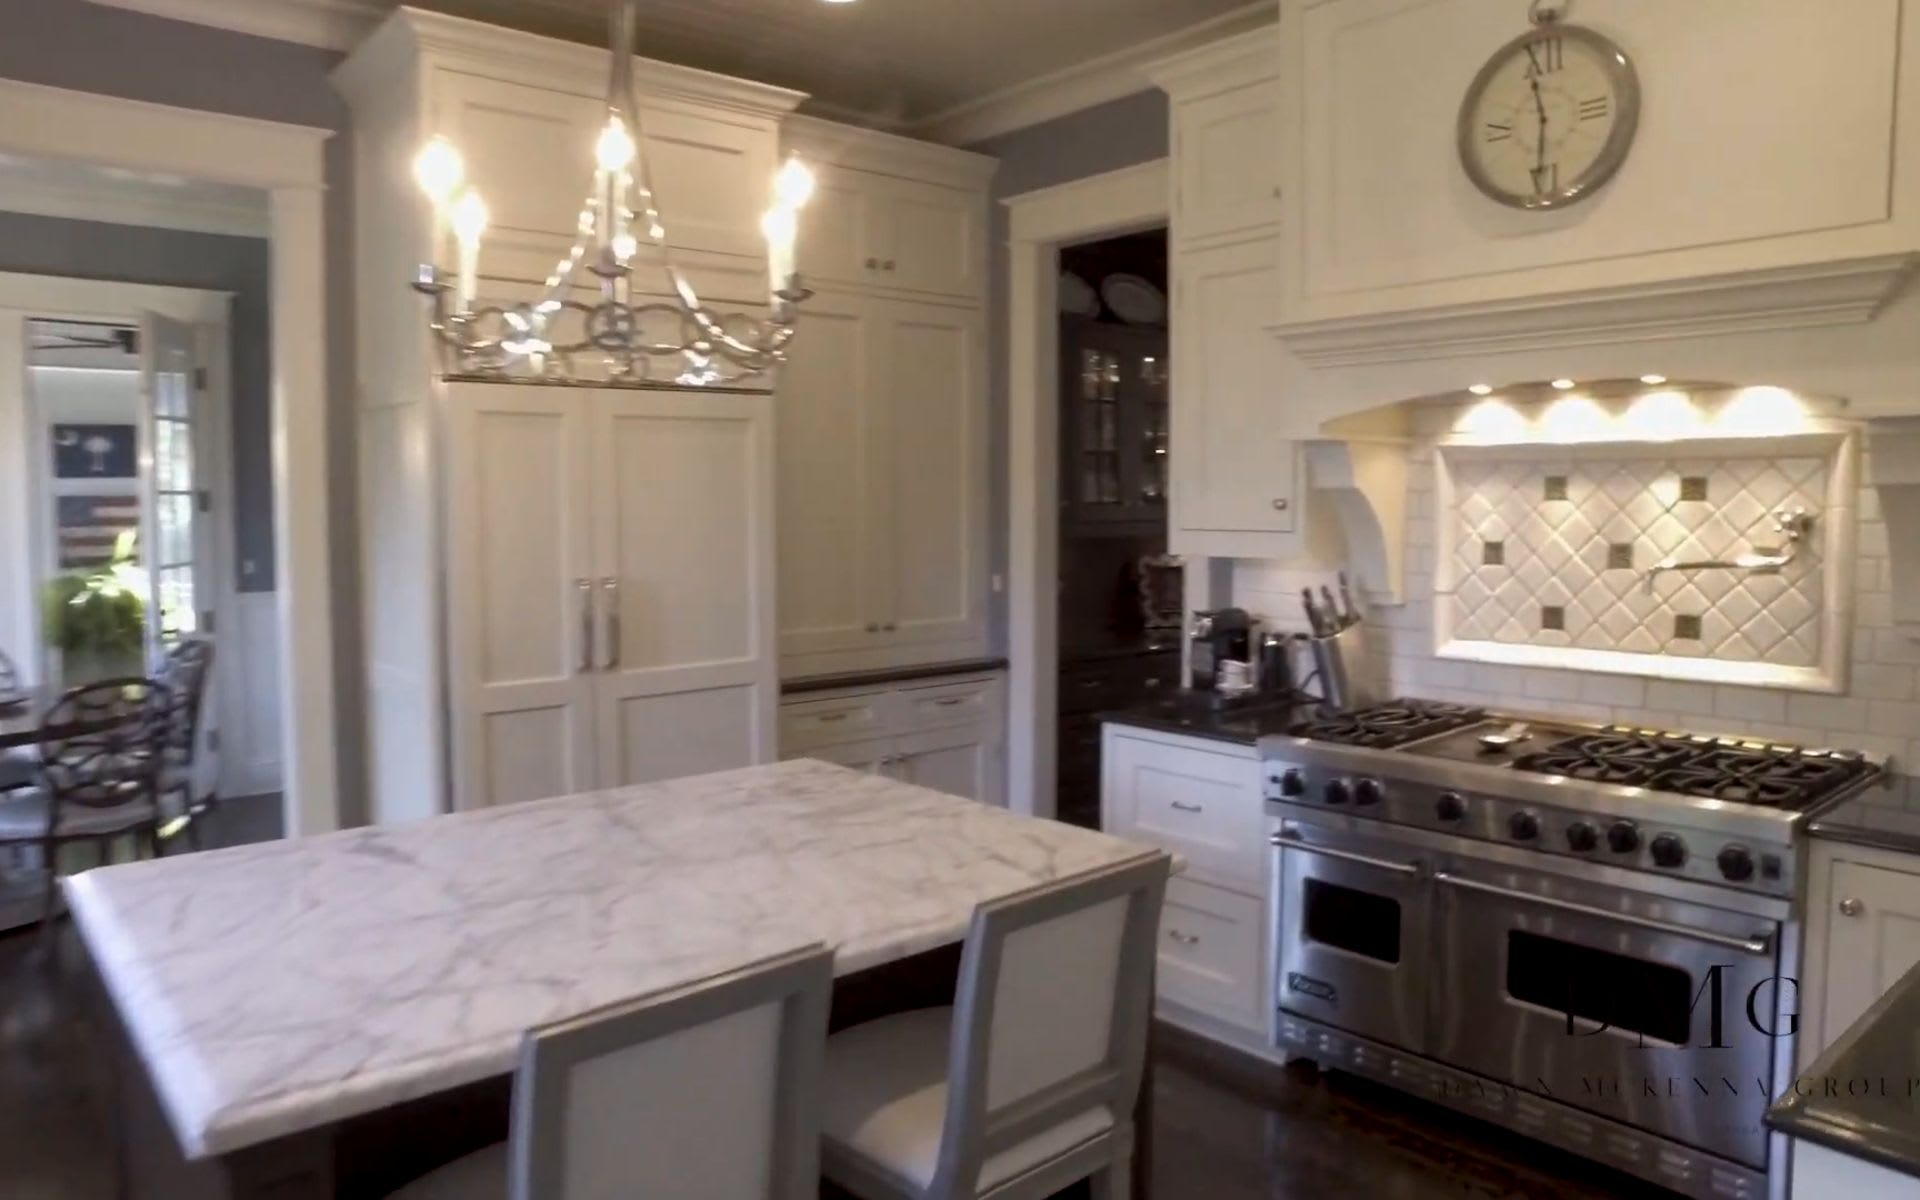 311 WEST 9TH STREET, HINSDALE, IL DAWN MCKENNA GROUP video preview